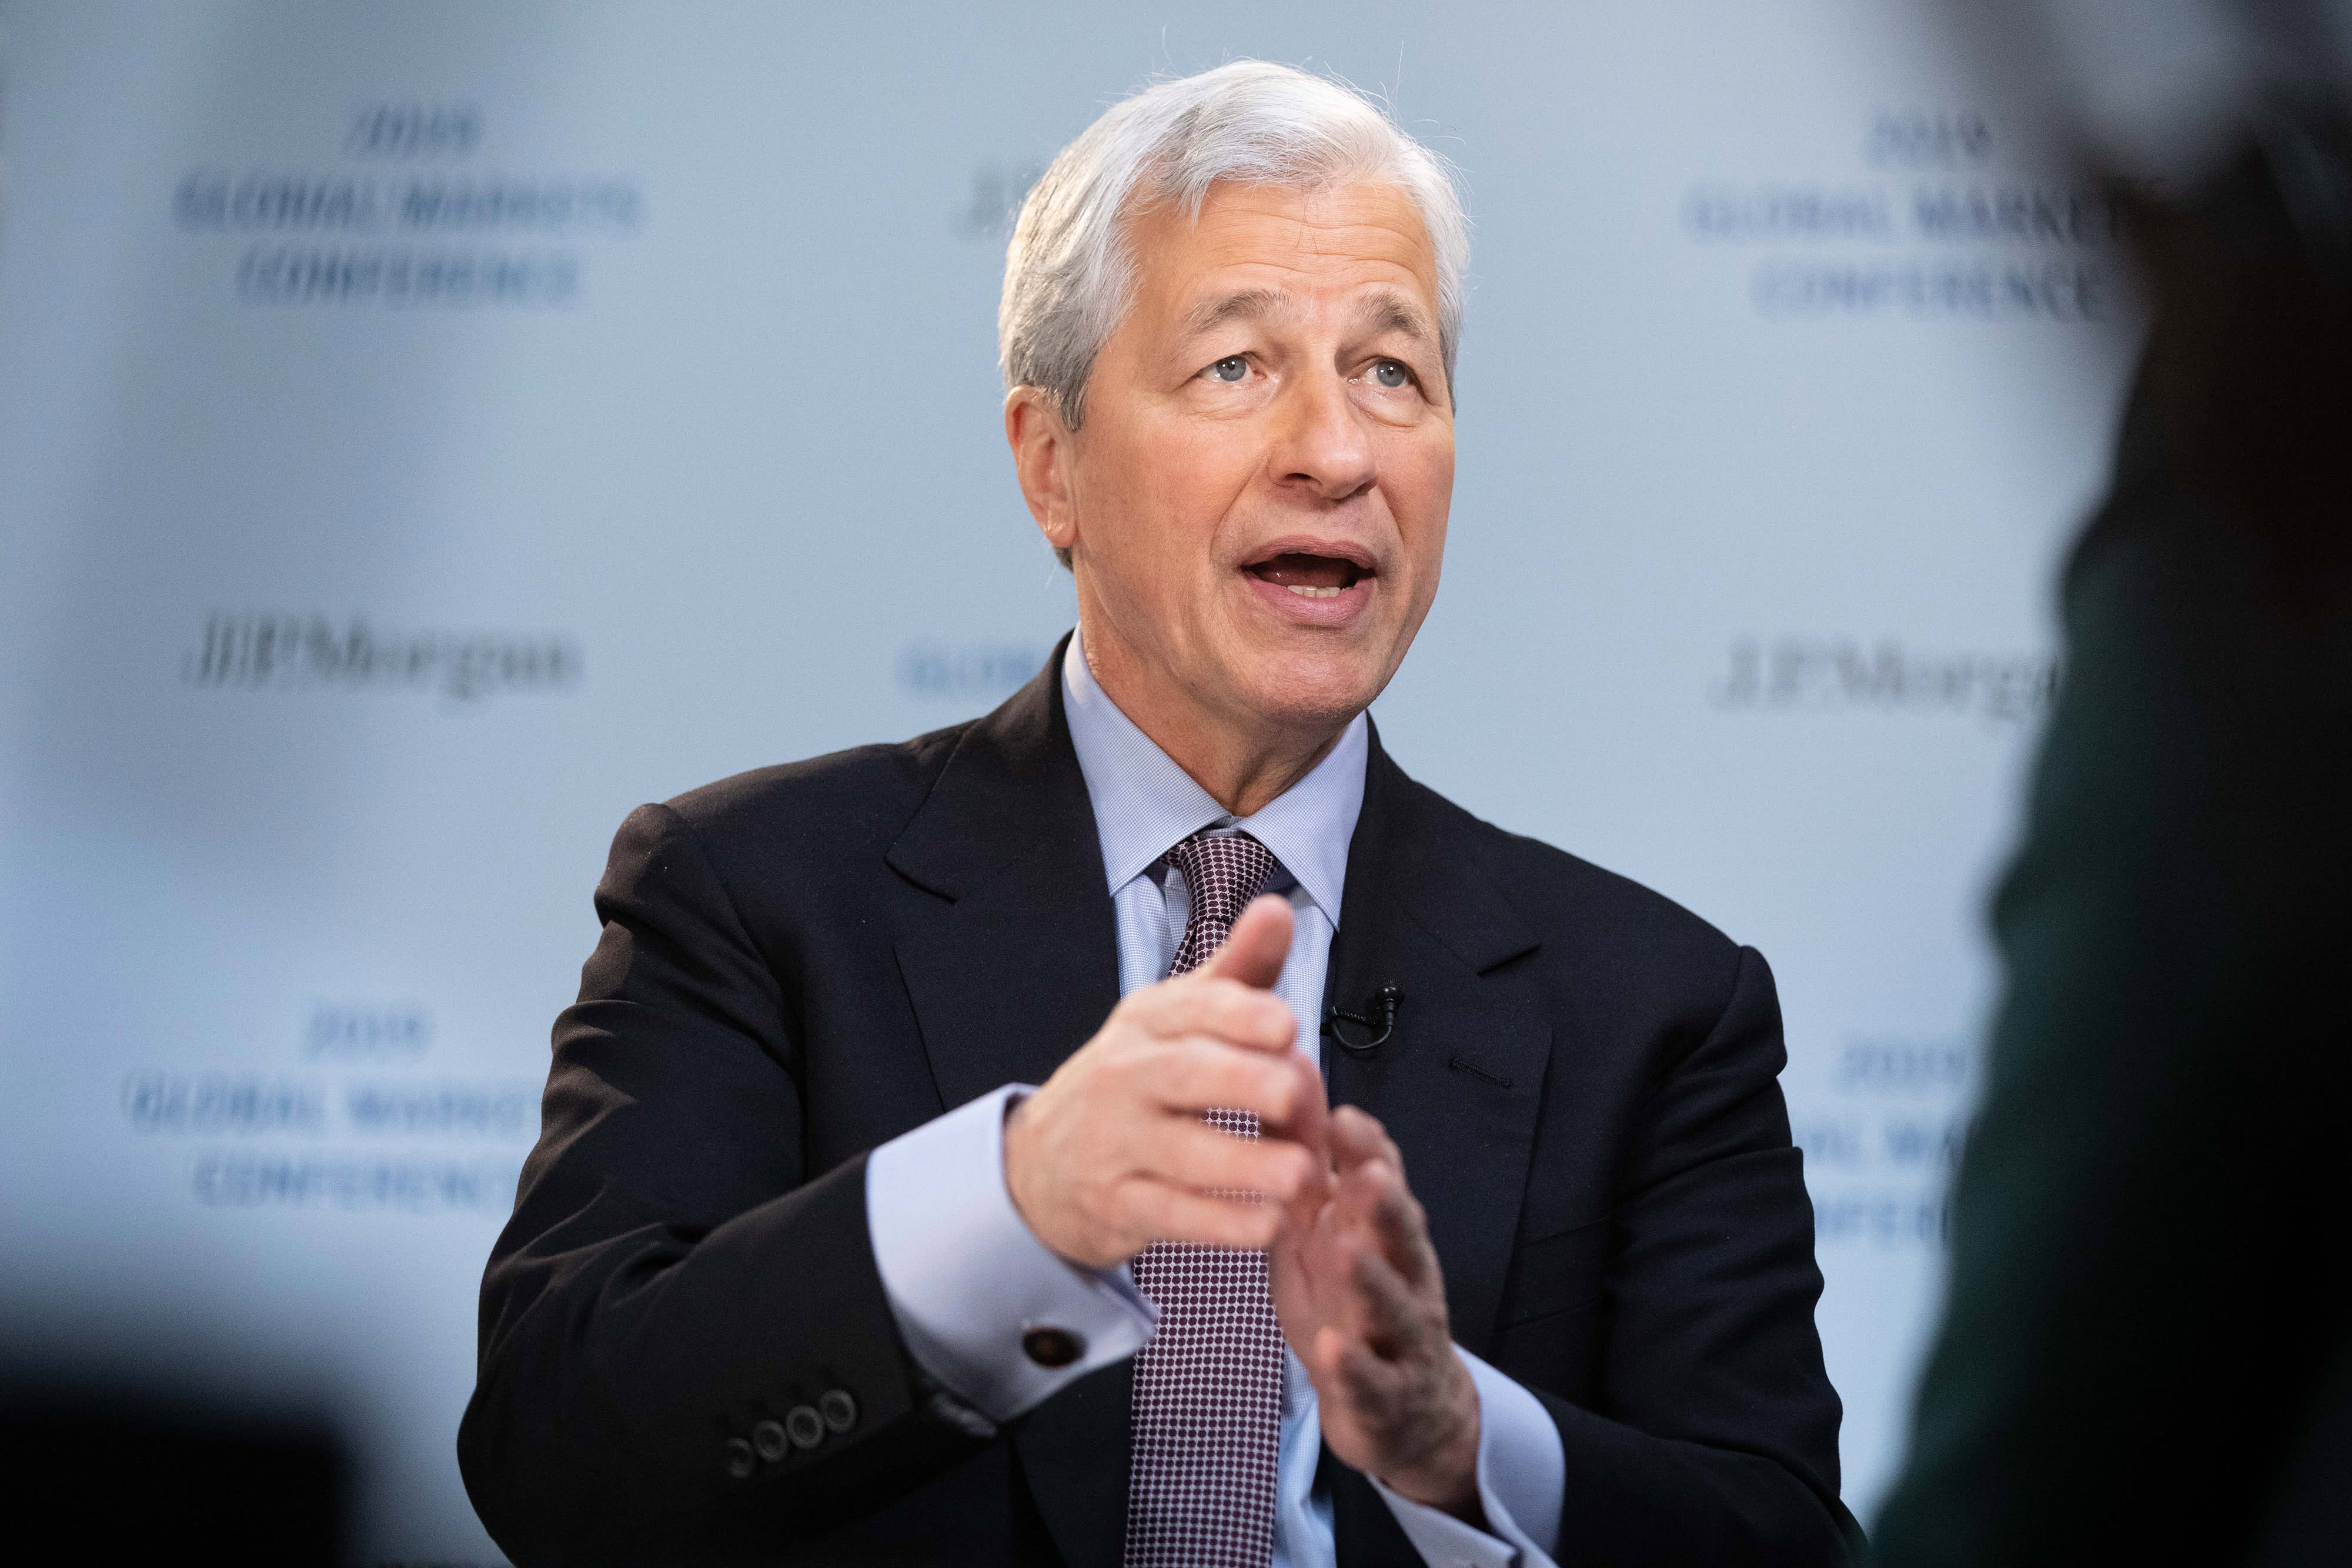 JPMorgan Chase 'strongly' urges all U.S. employees to get vaccinated ahead of office return